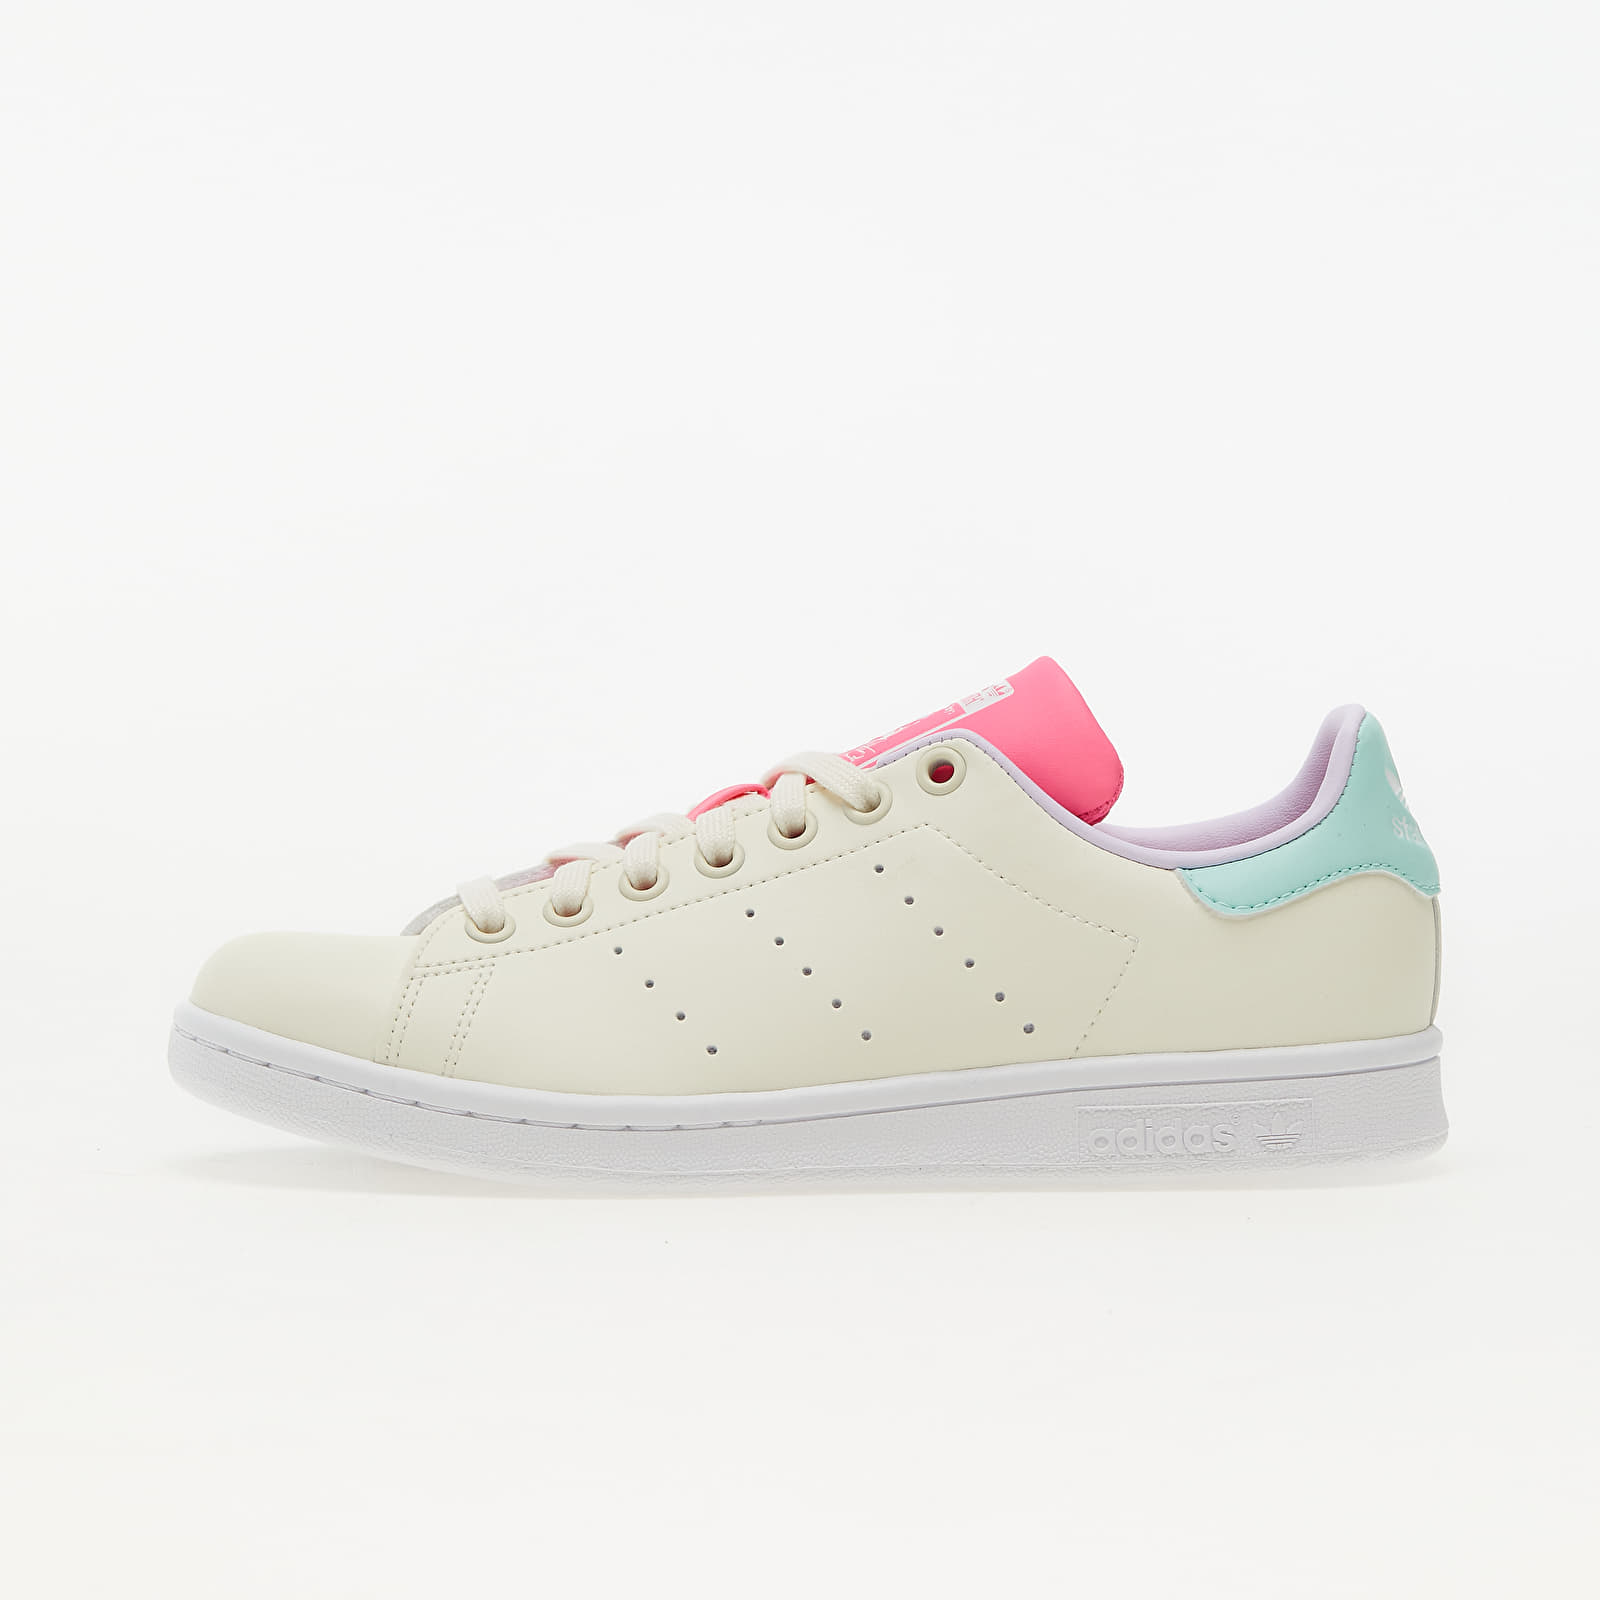 adidas Stan Smith W Core White/ Core White/ Clear Mint EUR 36